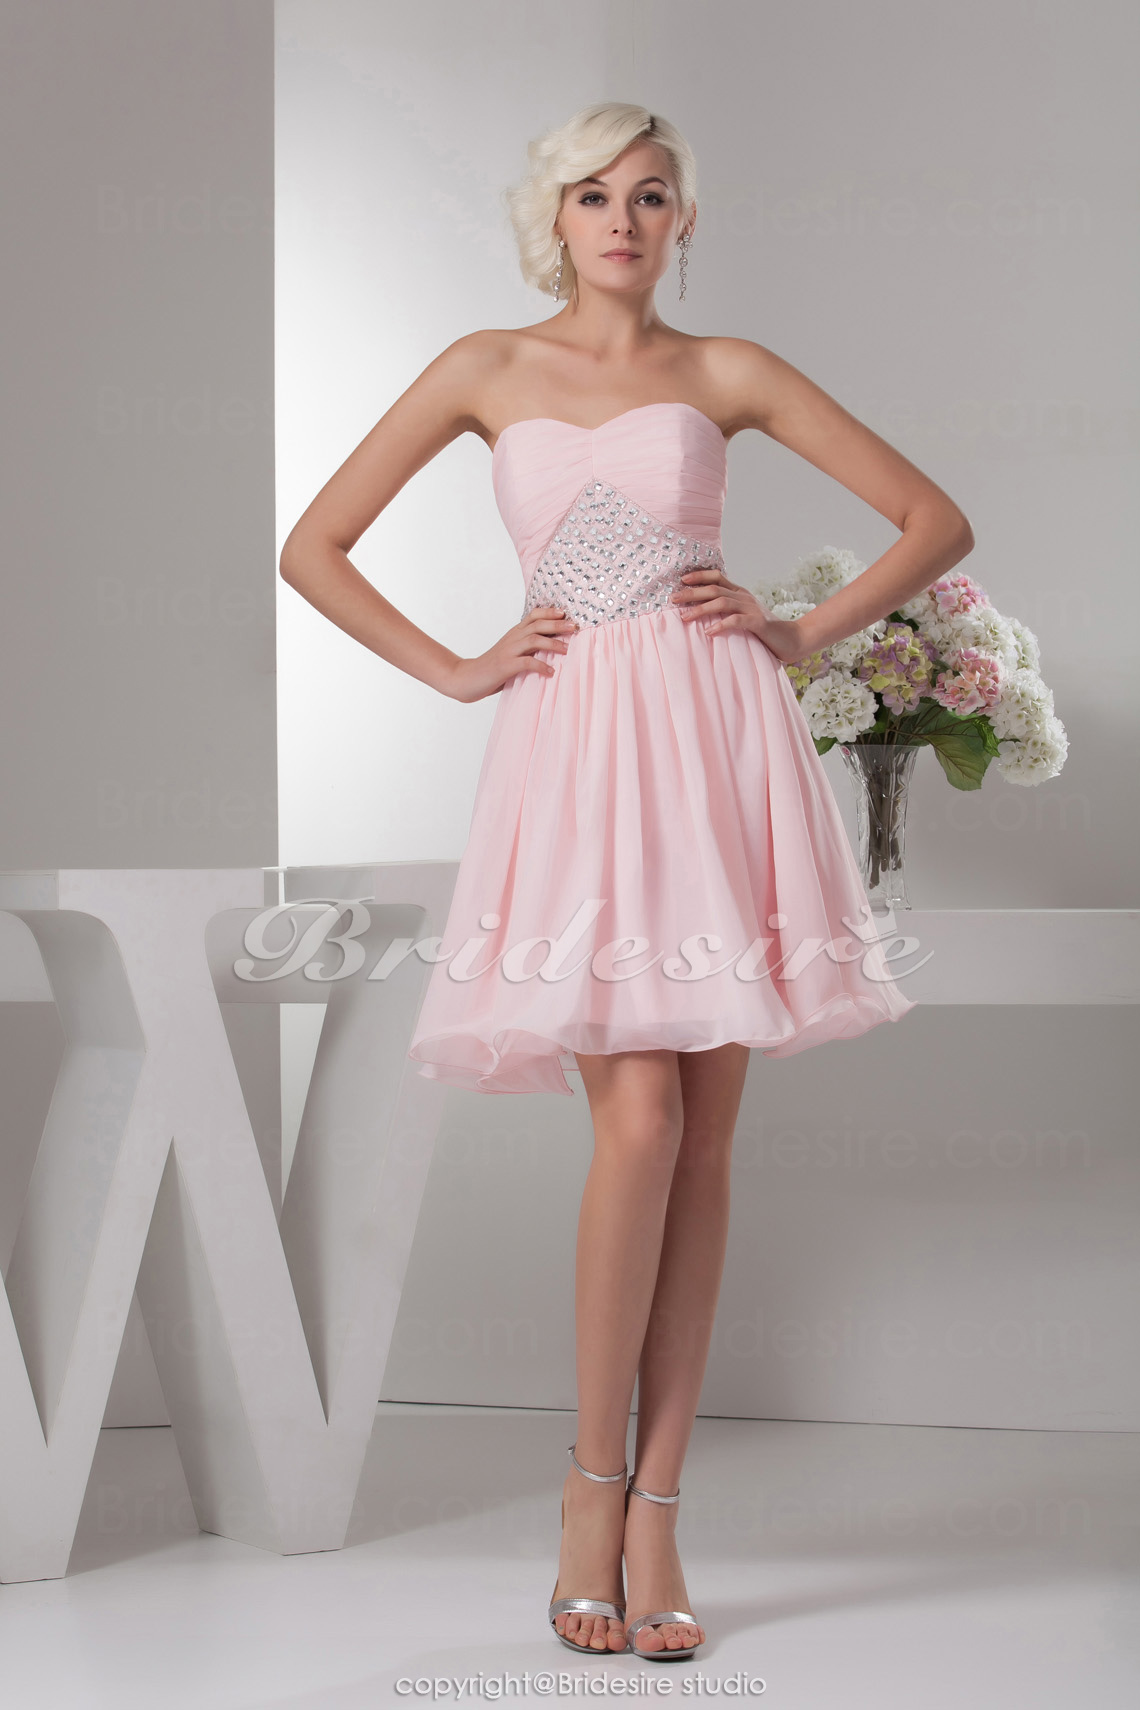 A-line Sweetheart Knee-length Sleeveless Chiffon Dress